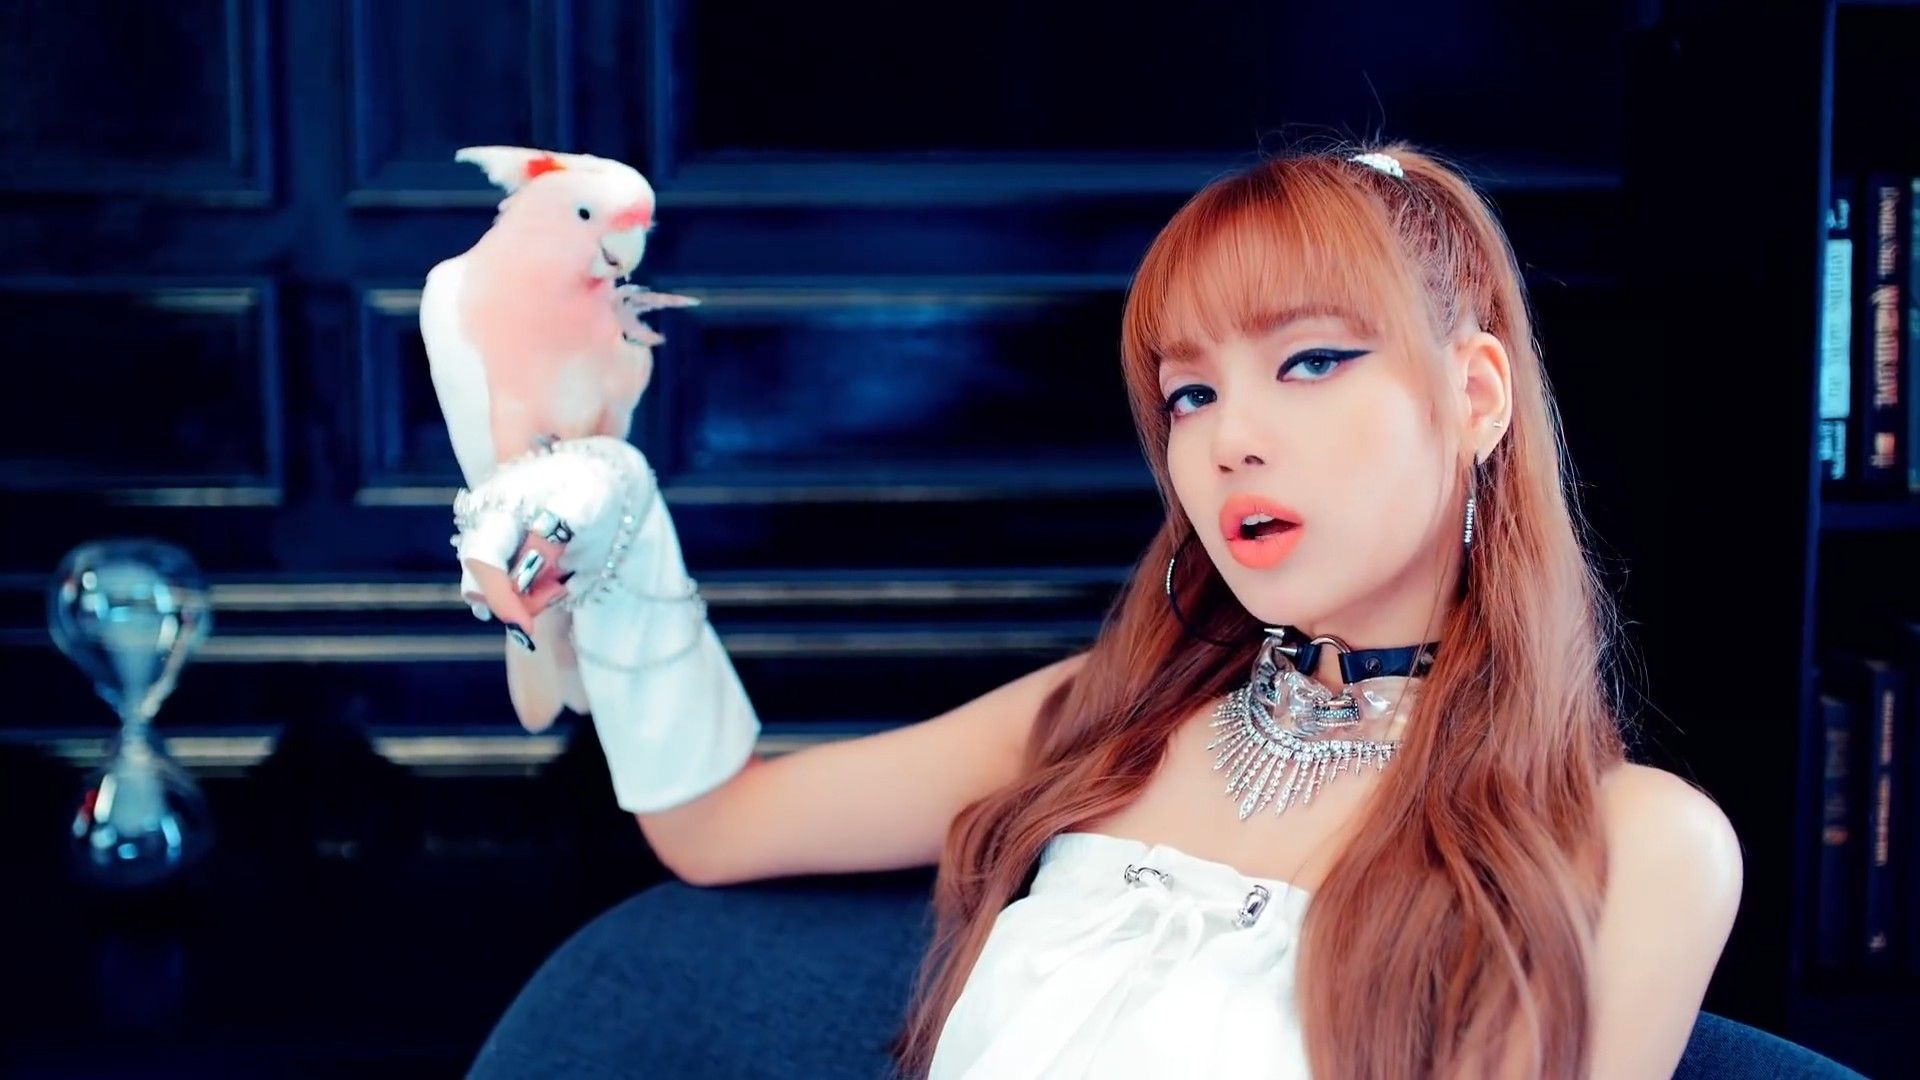 Lisa Blackpink Ddu Du Ddu Du Mv Blackpink Blackpink Lisa